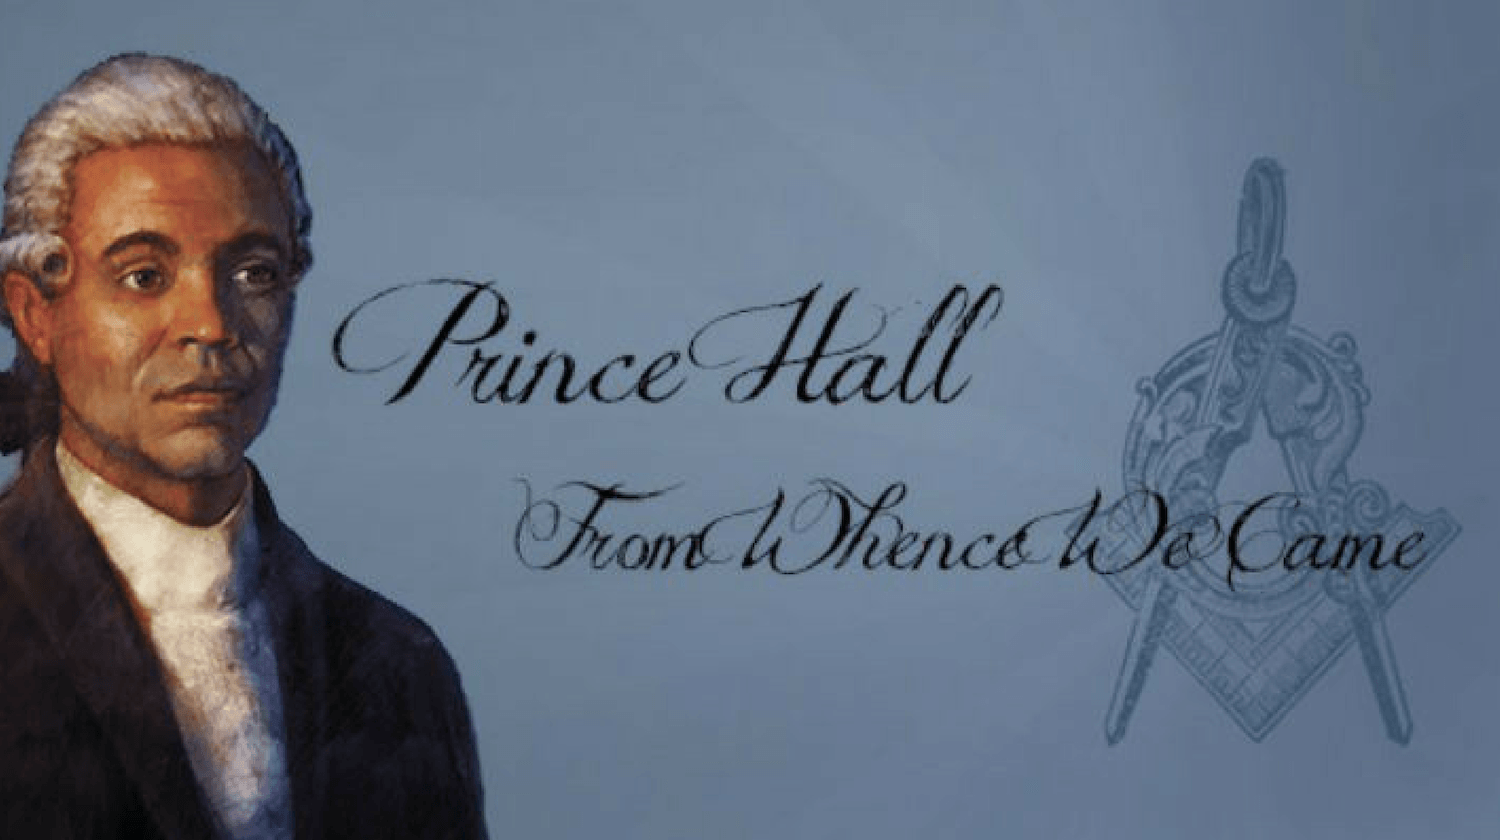 who was prince hall